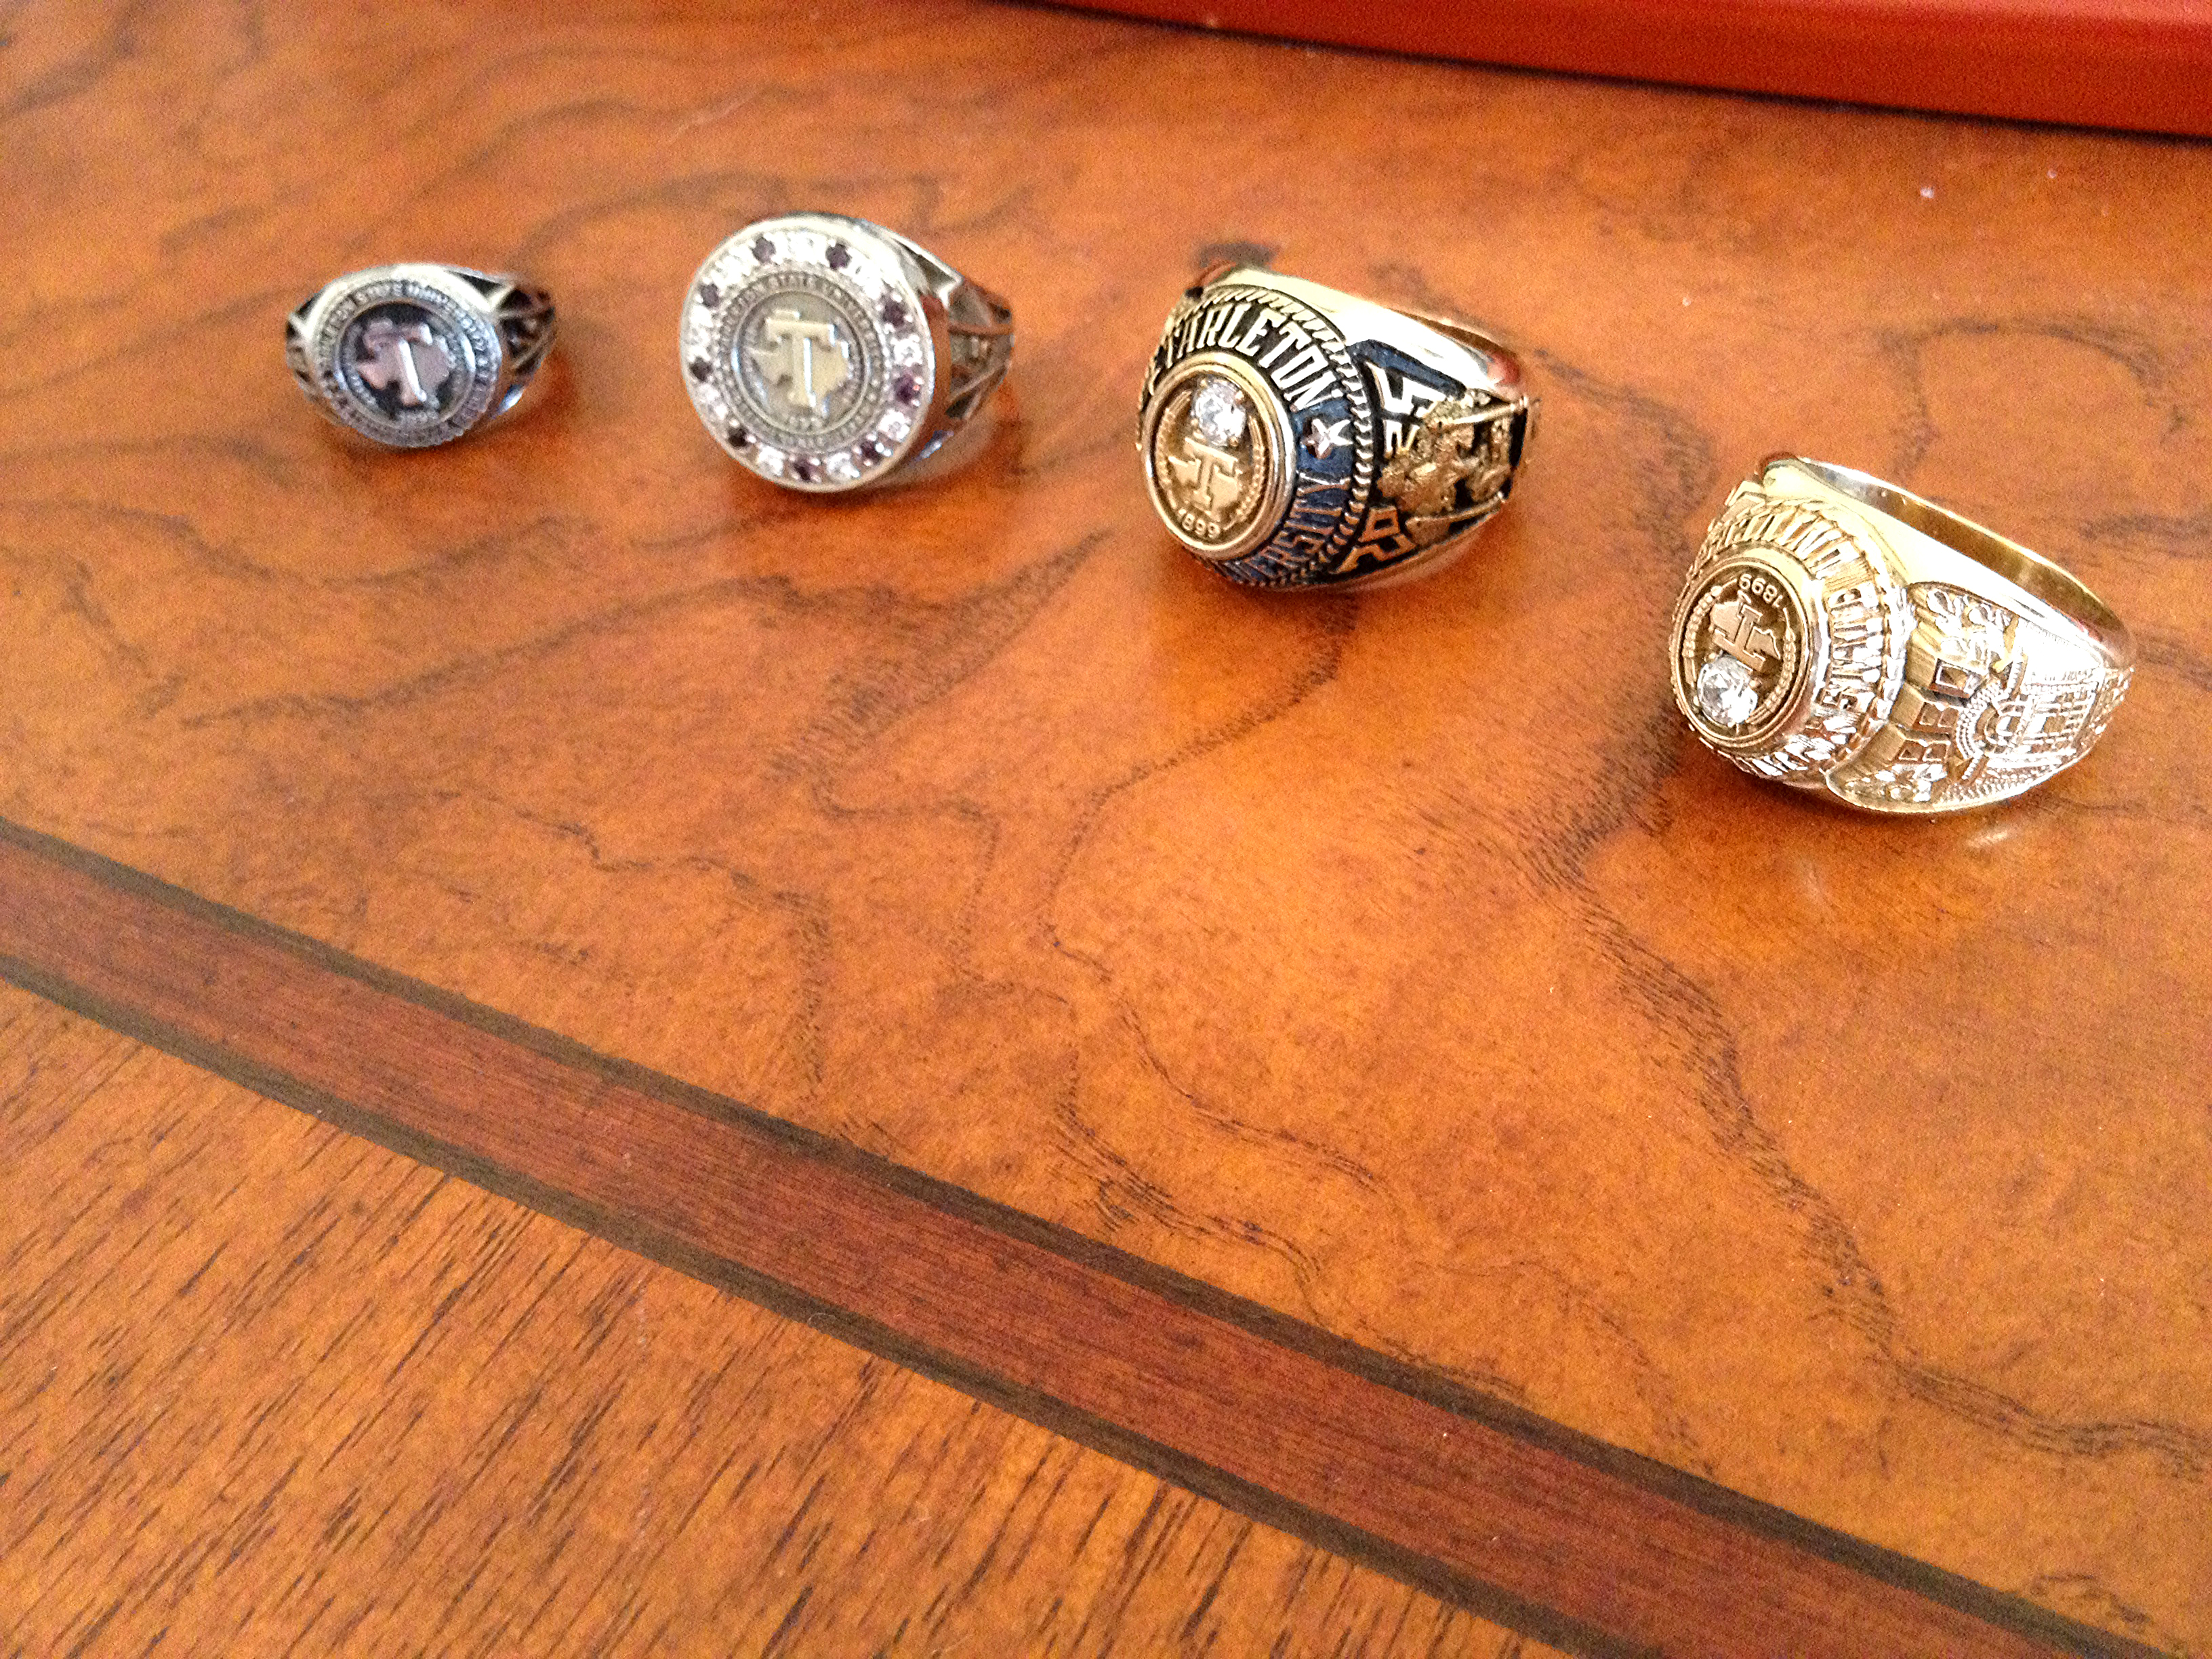 class usc august order upstate college your rings news monday ring